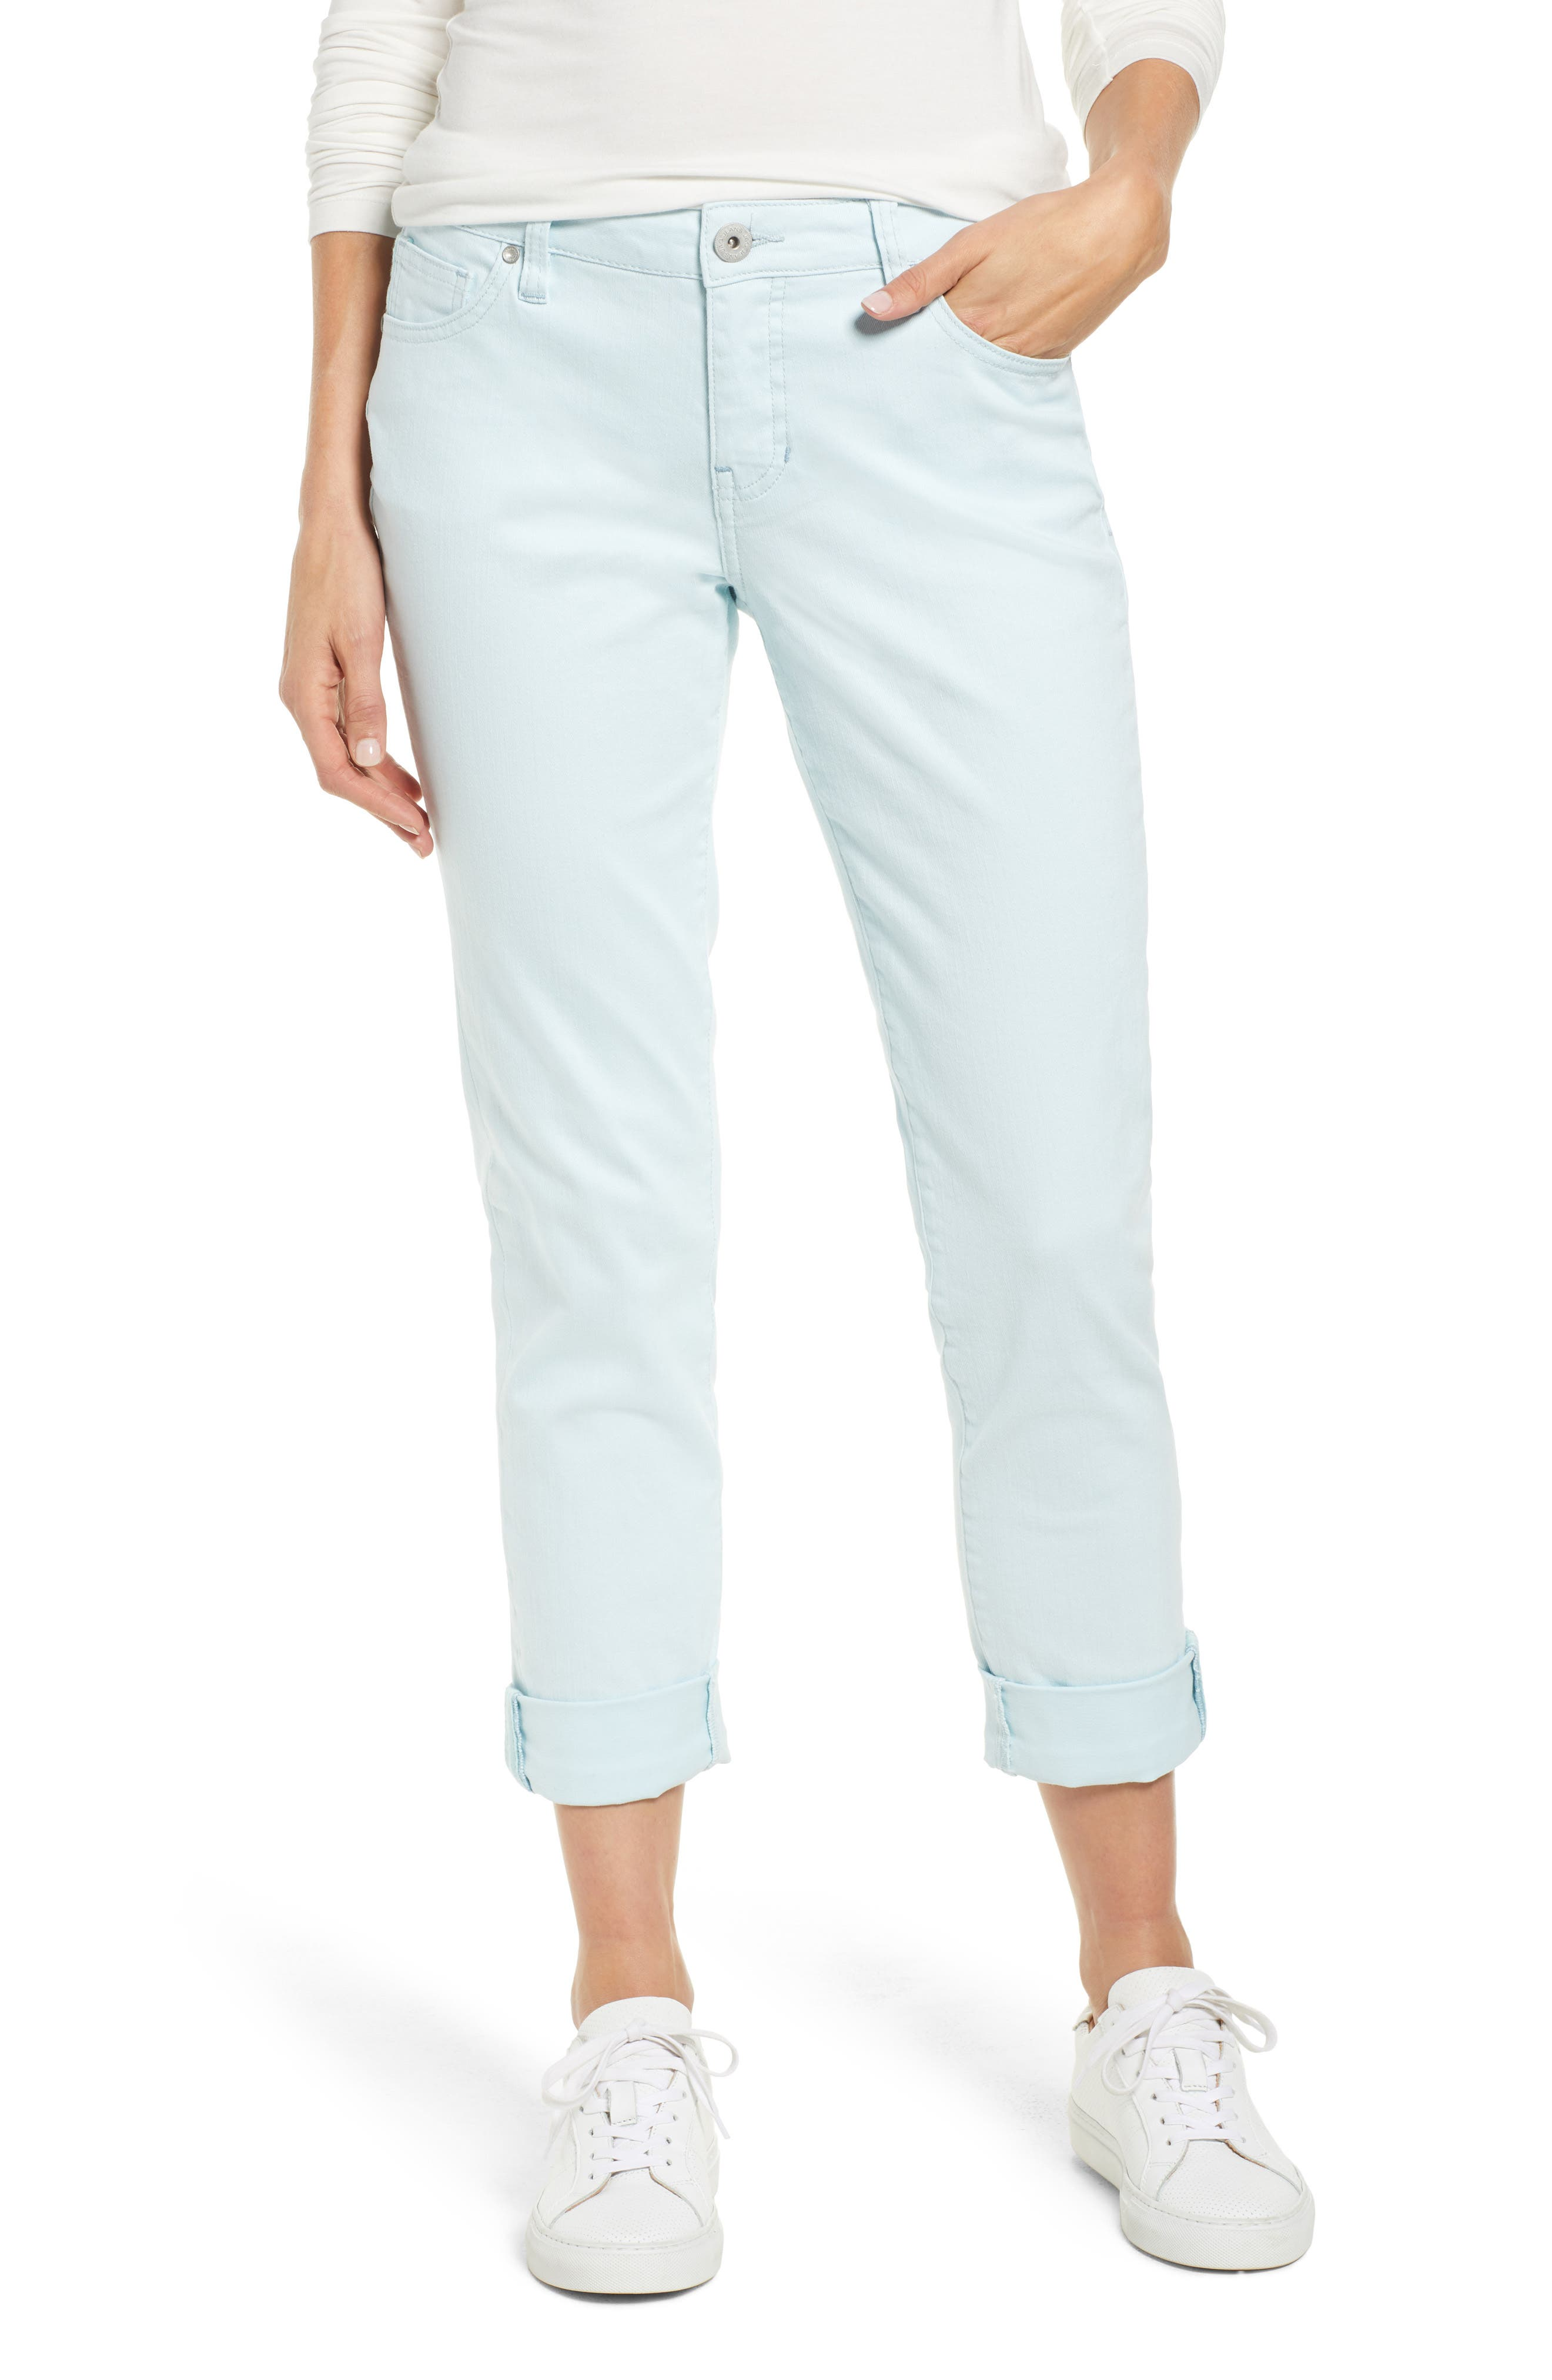 JAG JEANS Carter Girlfriend Stretch Cotton Jeans in Atmosphere